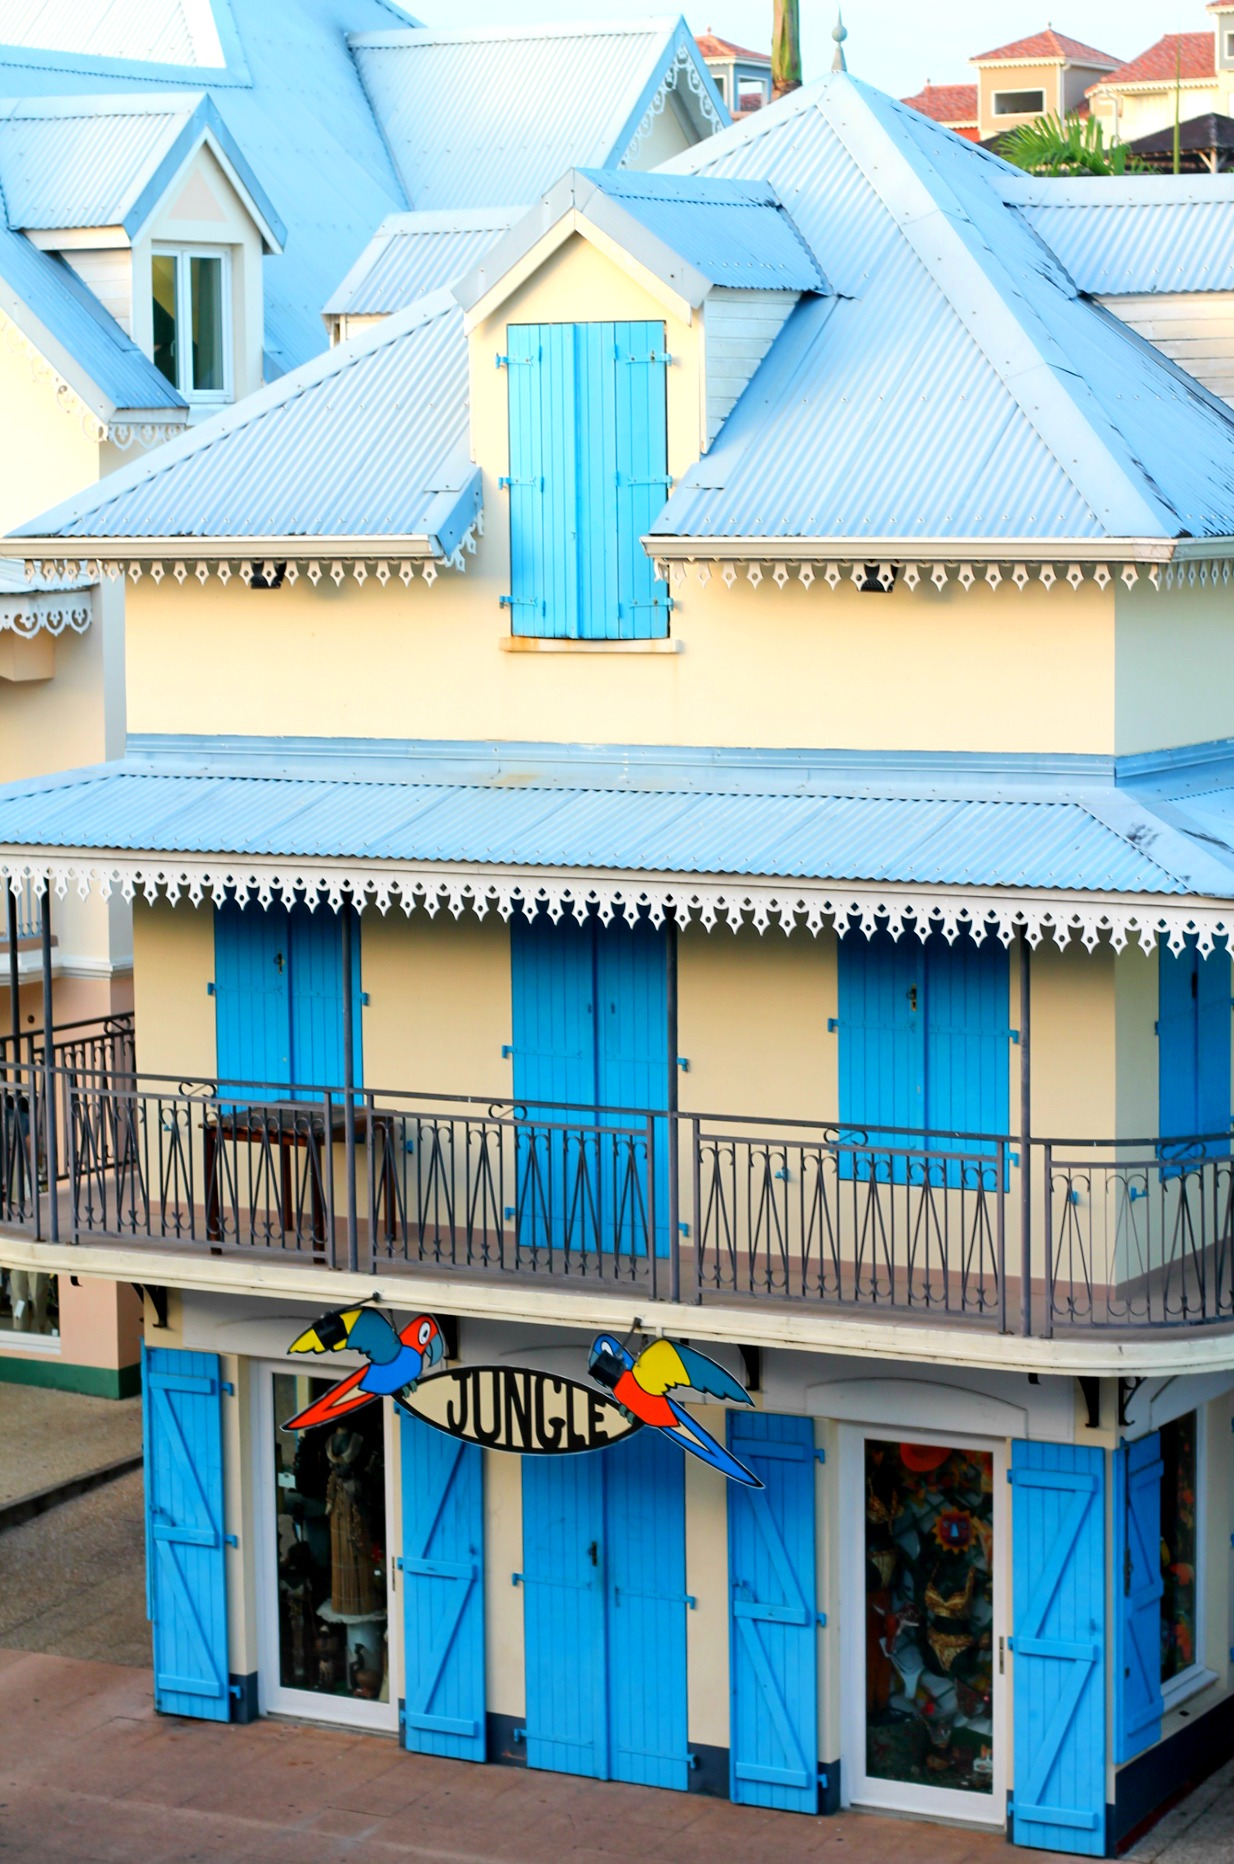 10 things to do in martinique lovebrownsugarlovebrownsugar for Boutique hotel martinique